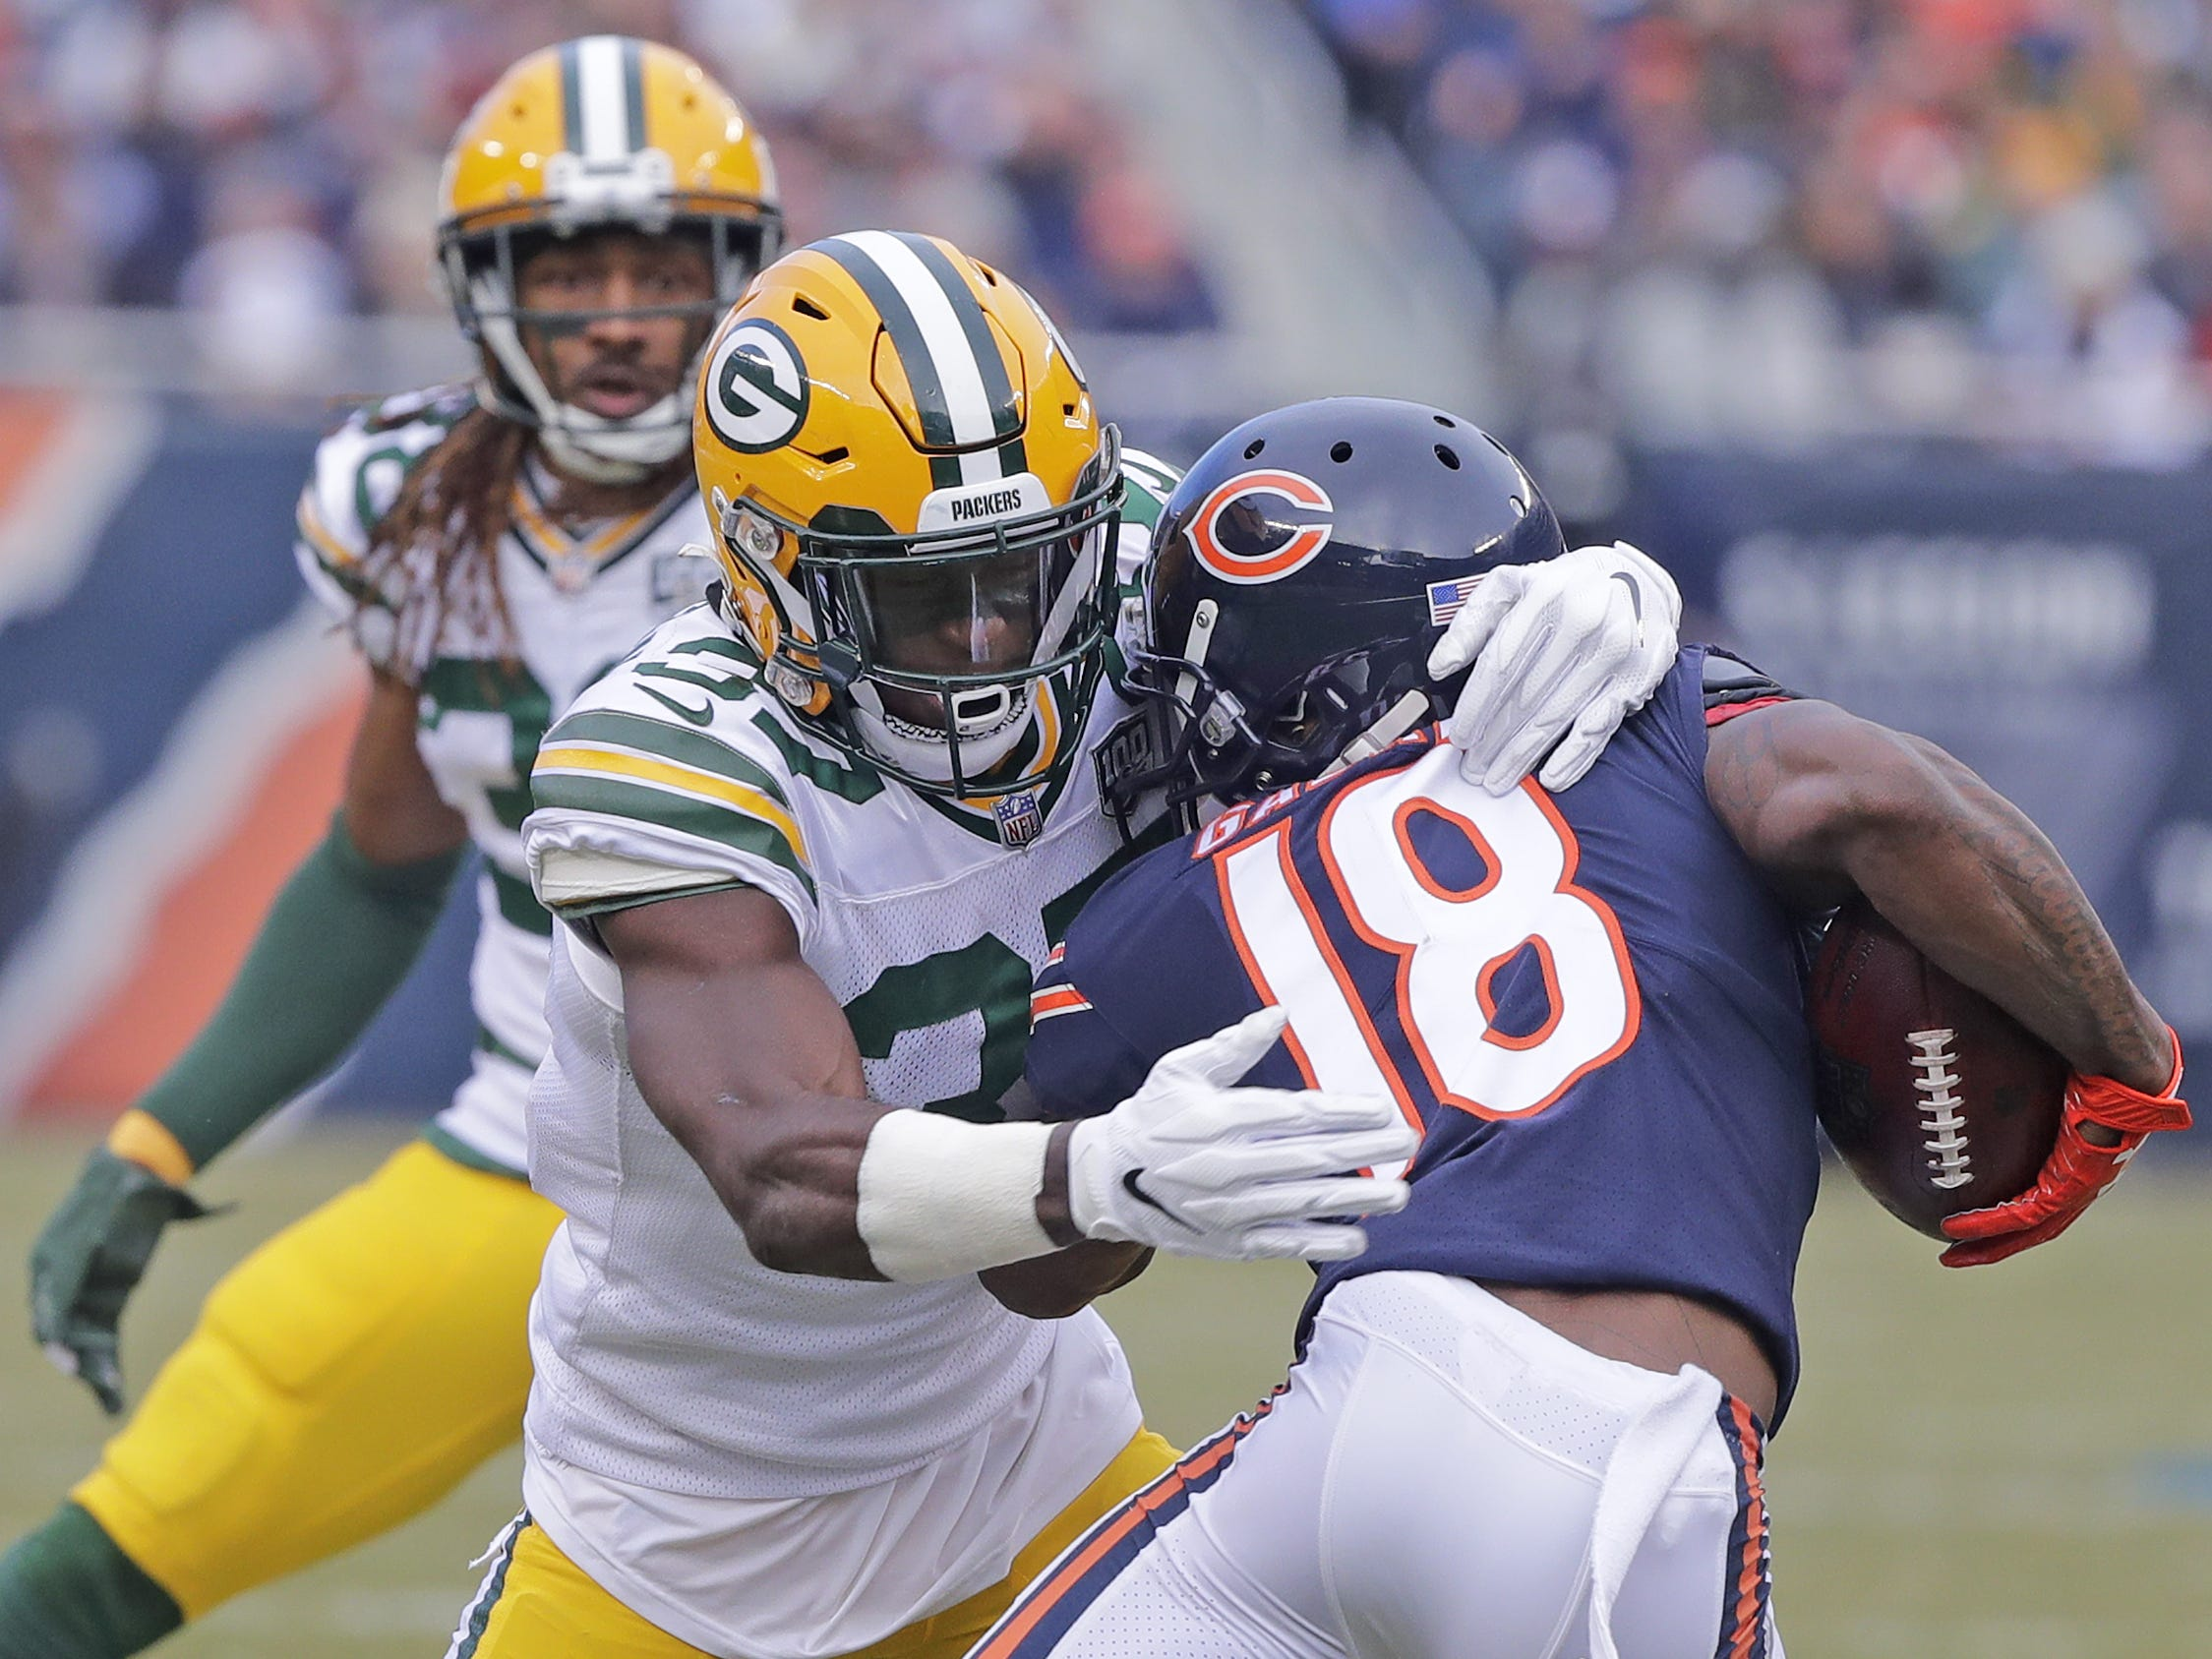 Green Bay Packers cornerback Josh Jackson (37) tackles Chicago Bears wide receiver Taylor Gabriel (18) in the second quarter at Soldier Field on Sunday, December 16, 2018 in Chicago, Illinois. Adam Wesley/USA TODAY NETWORK-Wis